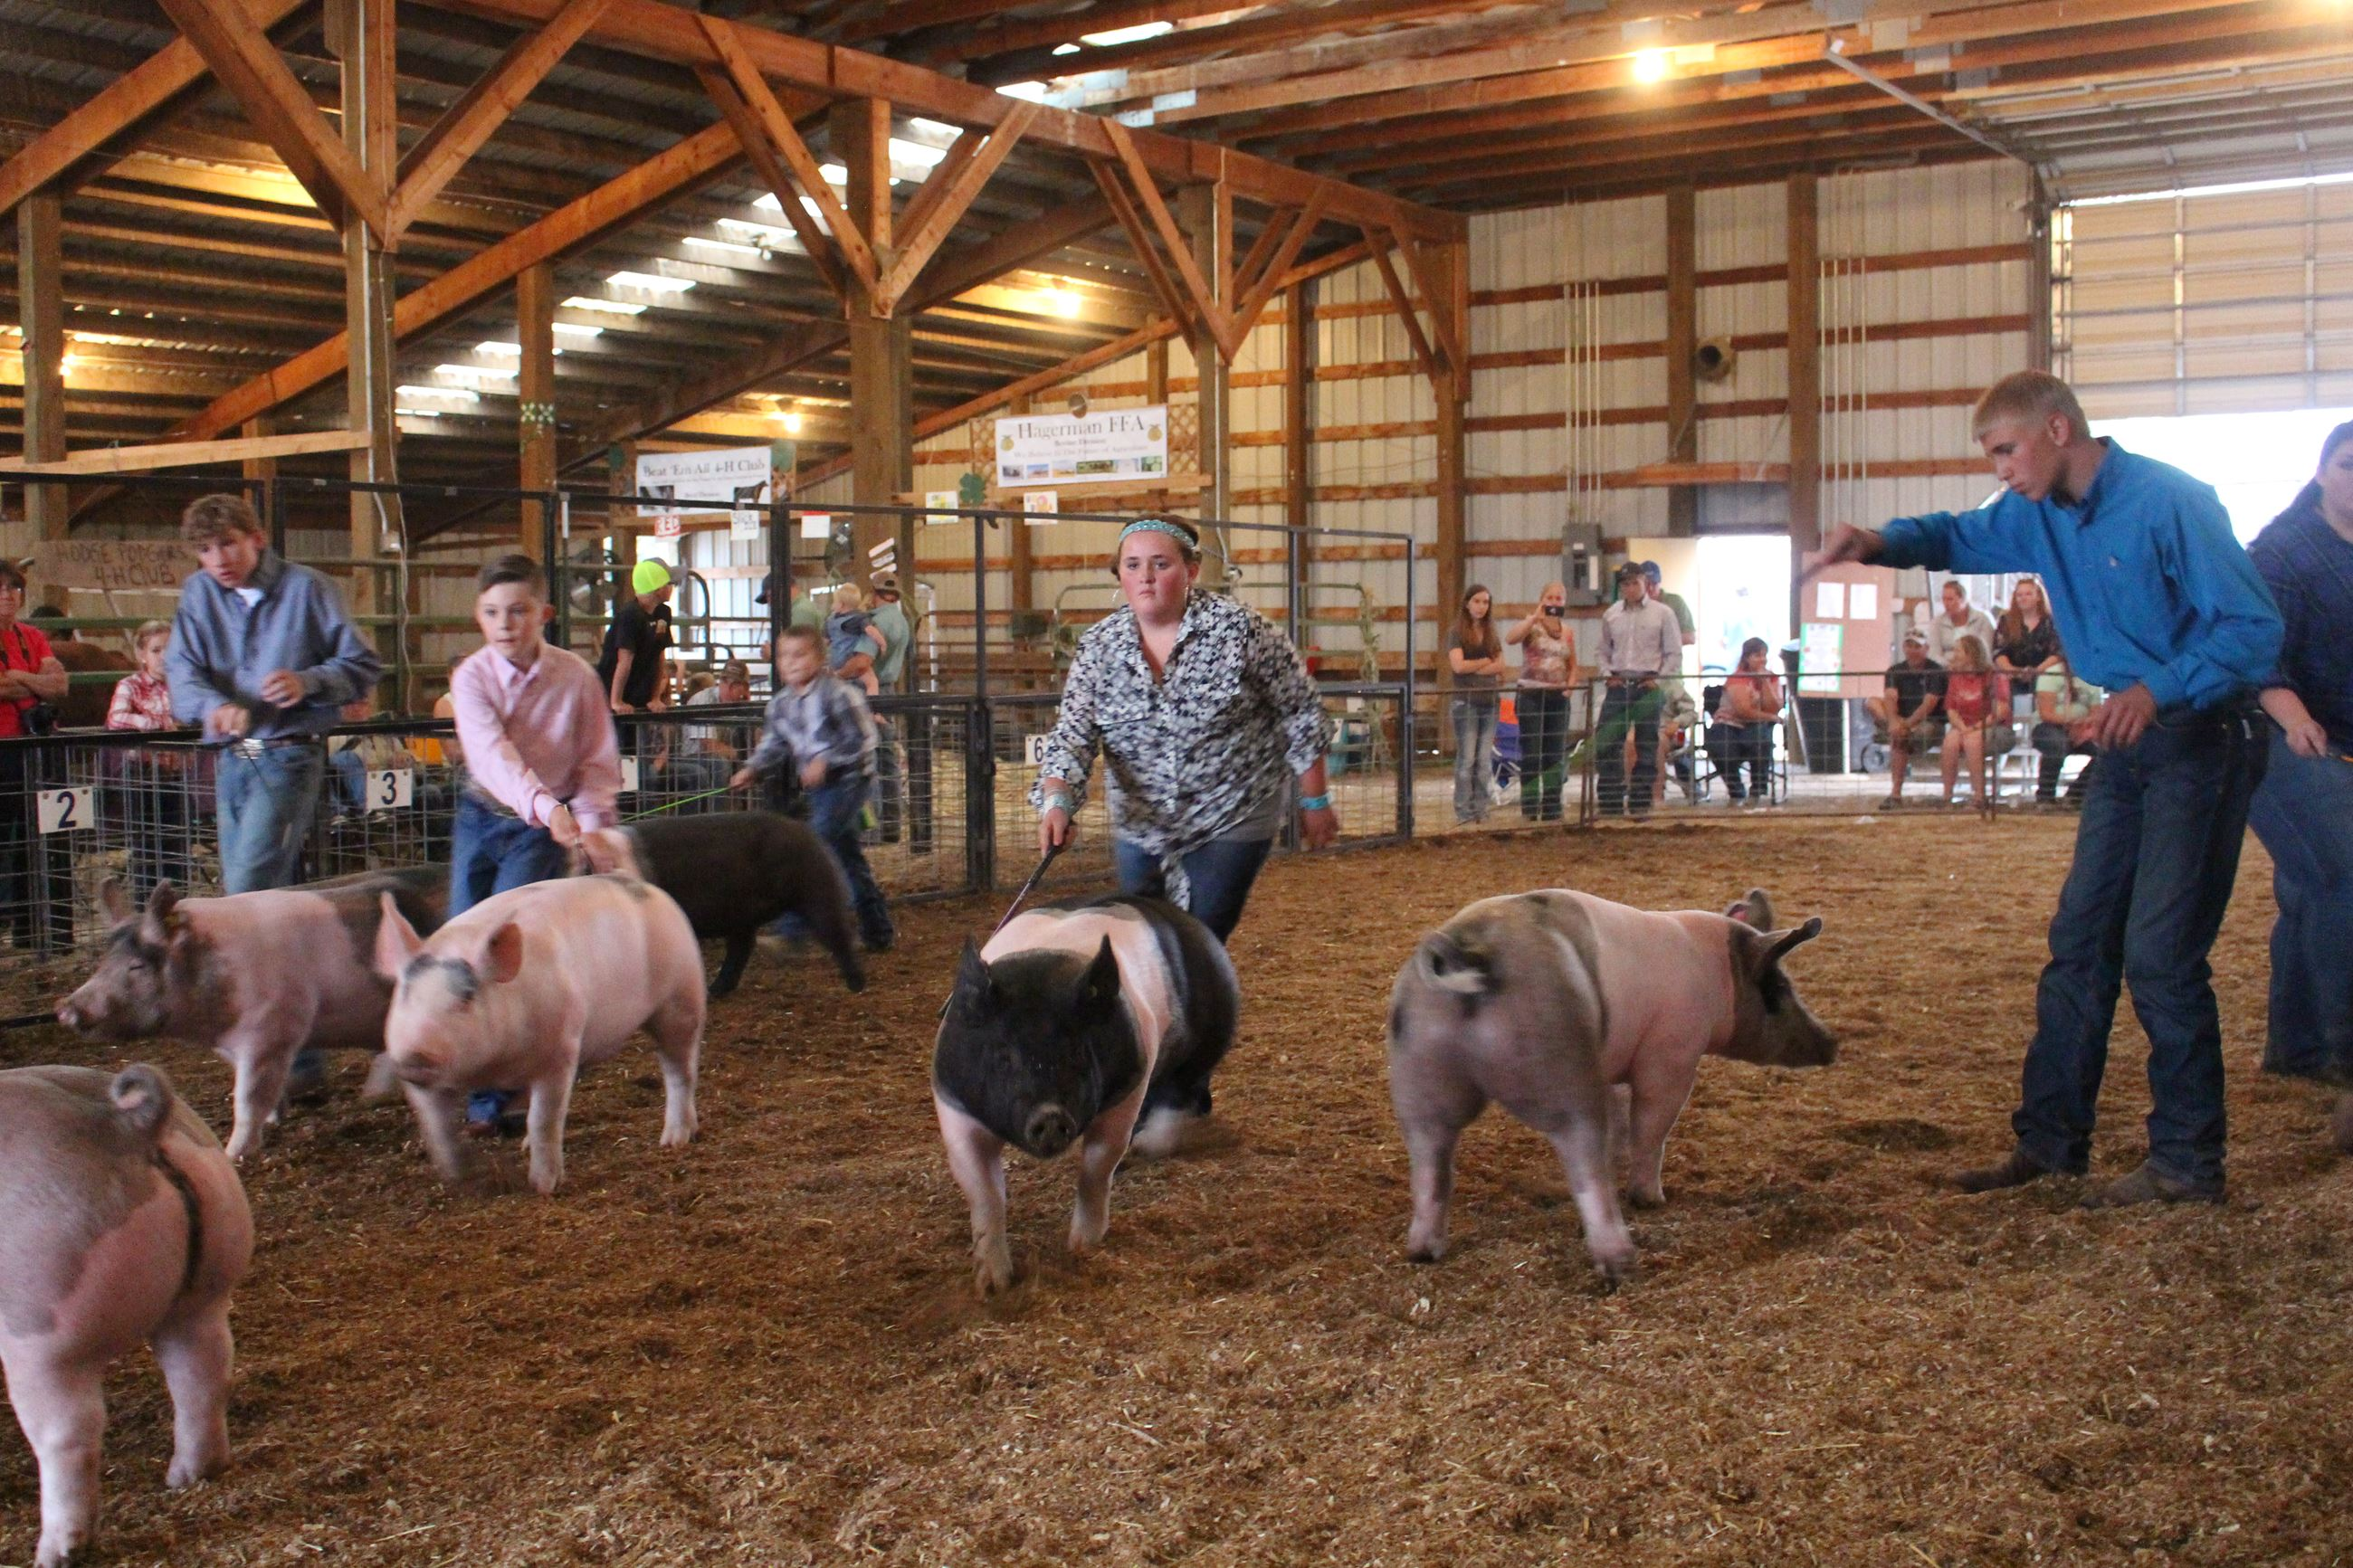 Swine showmanship 112